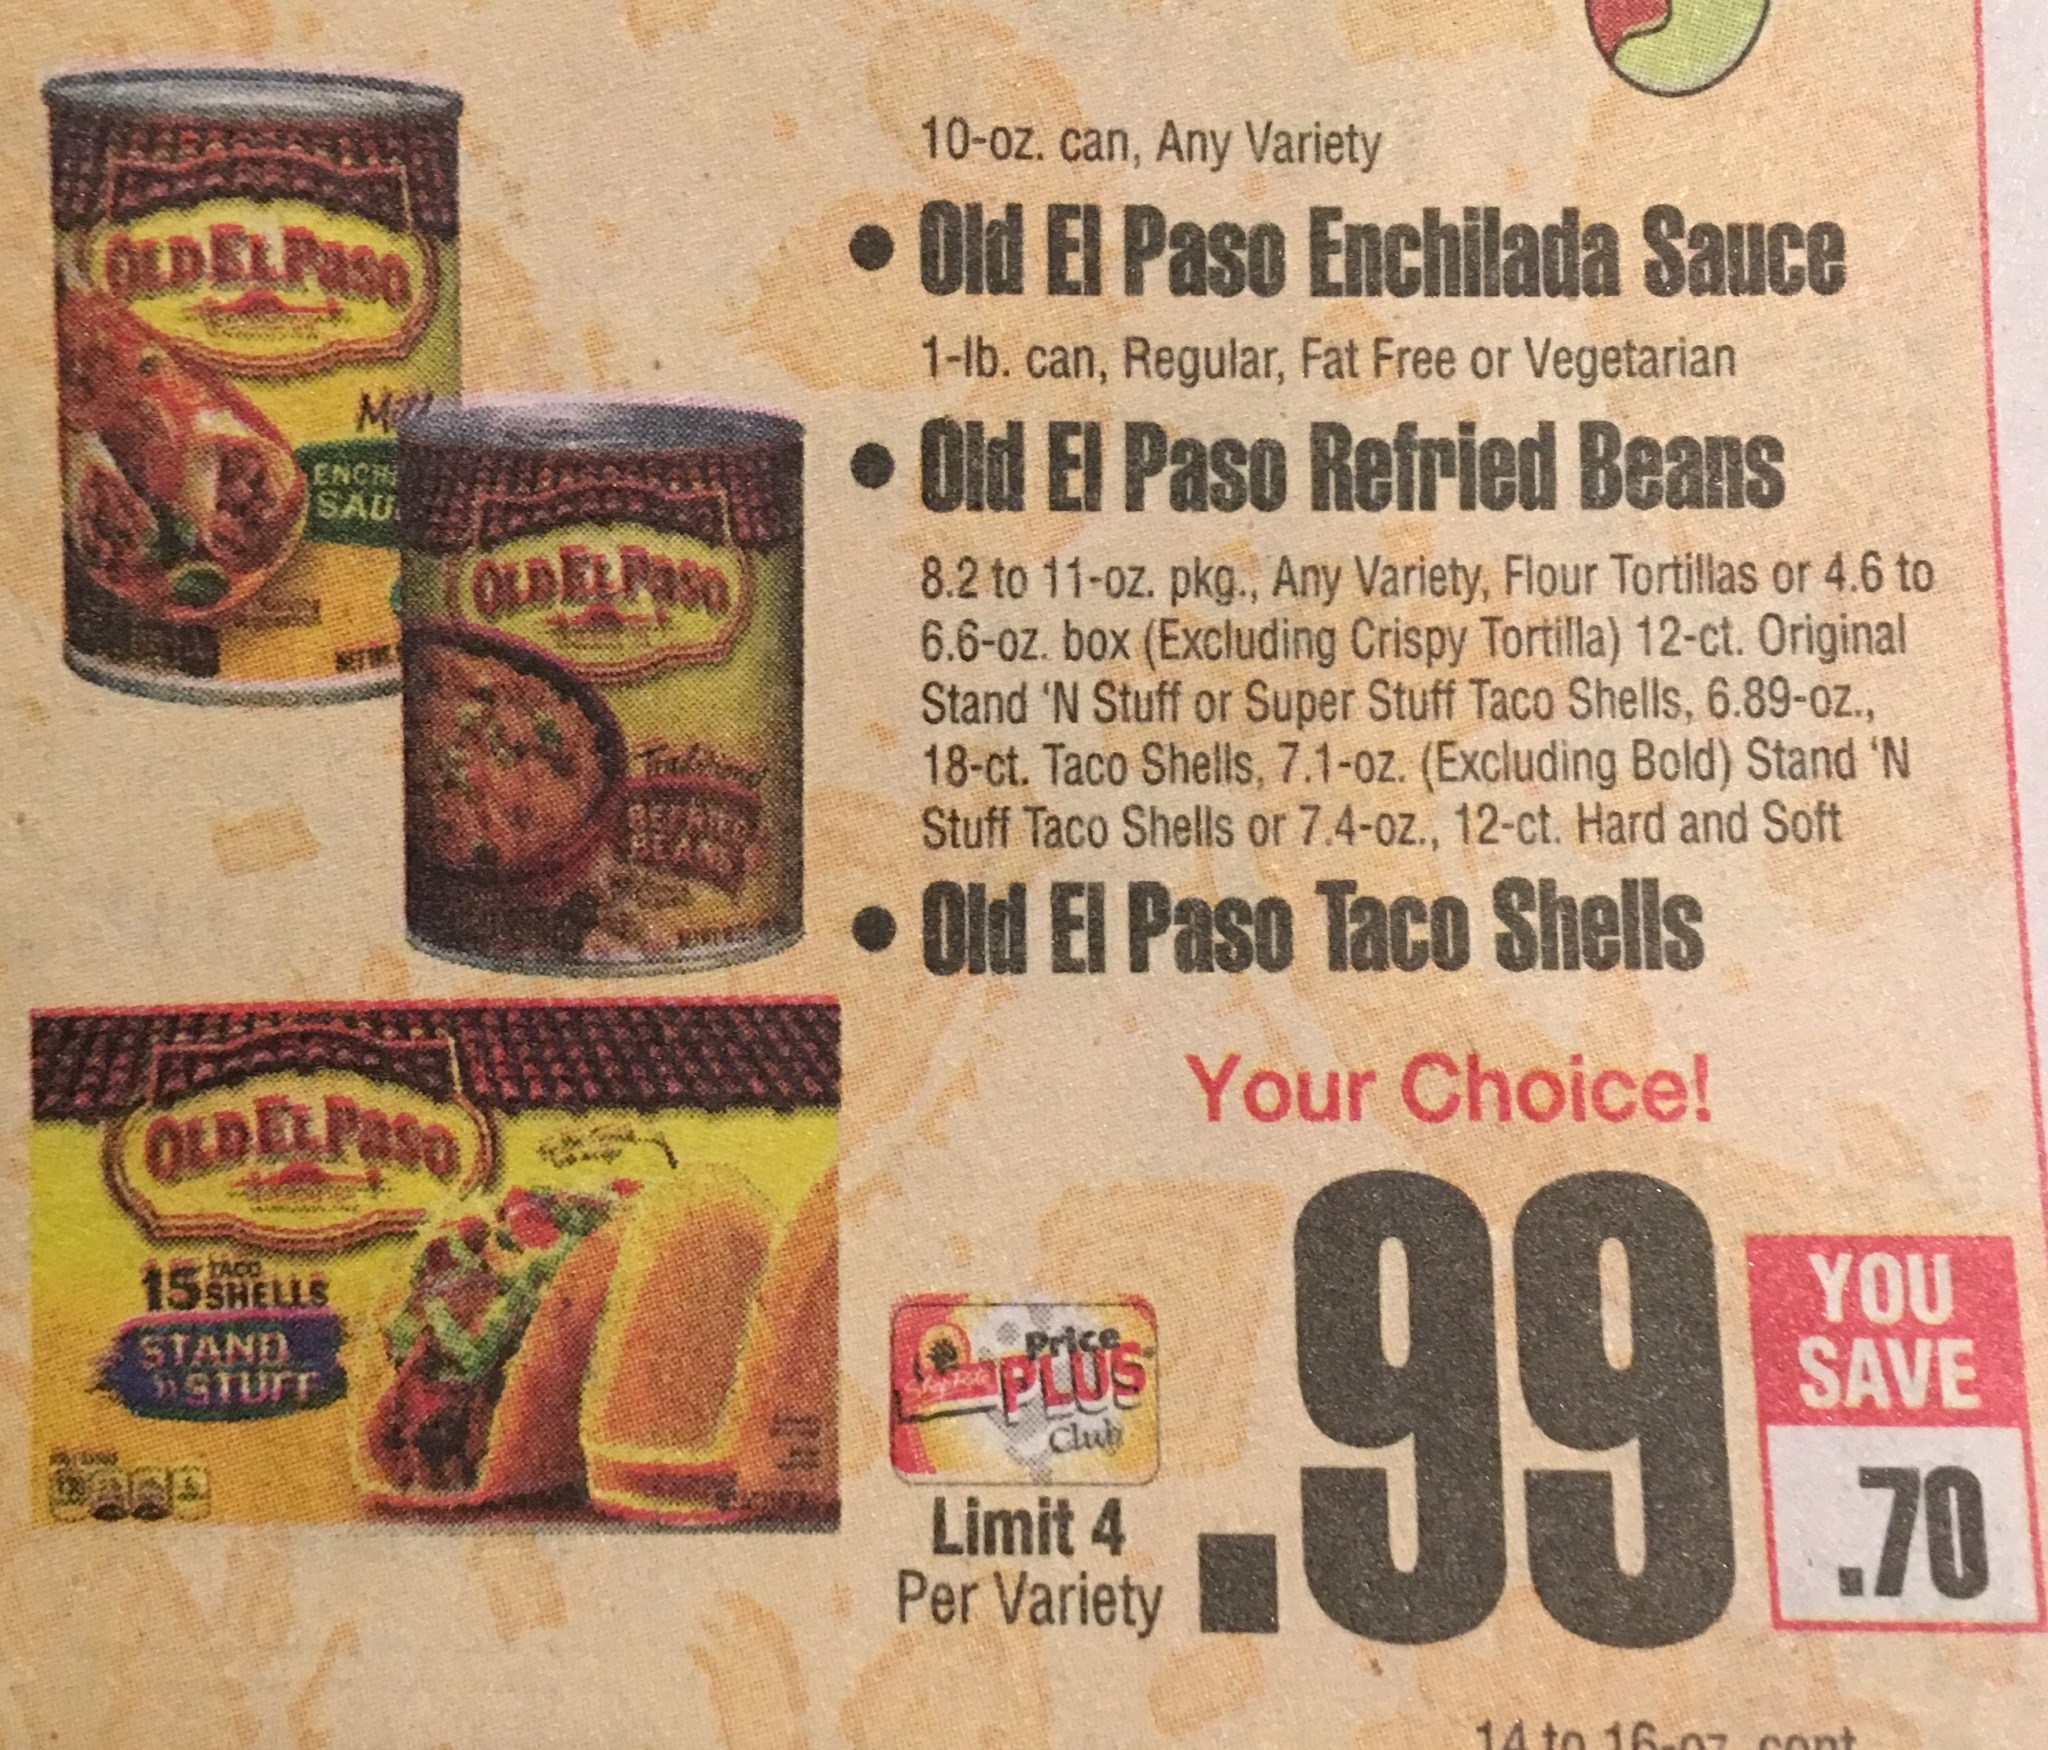 Free And Cheap Old El Paso Products Starting 1/21/18 - Free Printable Old El Paso Coupons